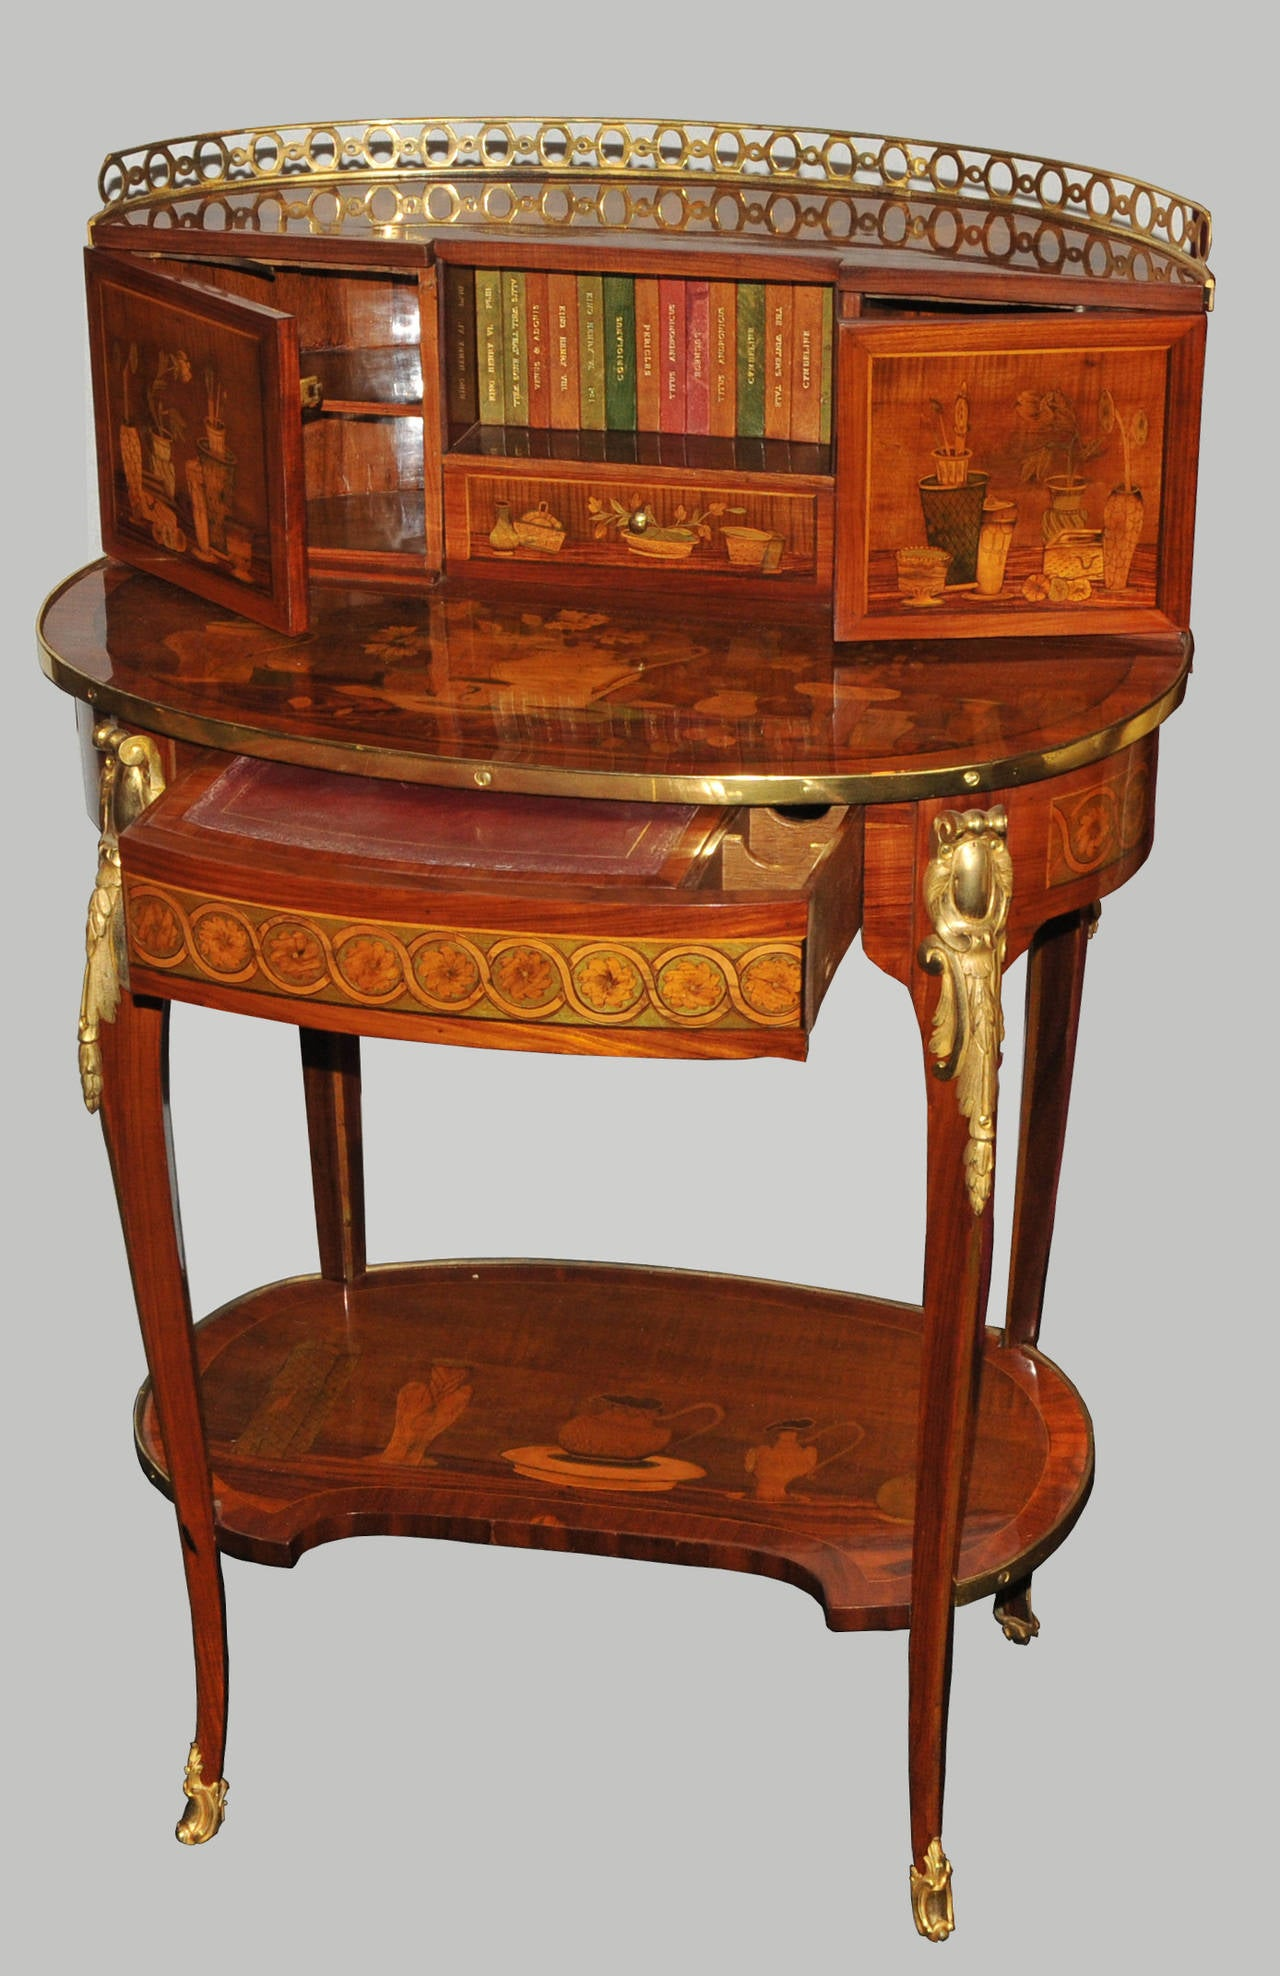 Bonheur du jour attributed to charles topino at 1stdibs - Archives du doubs tables decennales ...